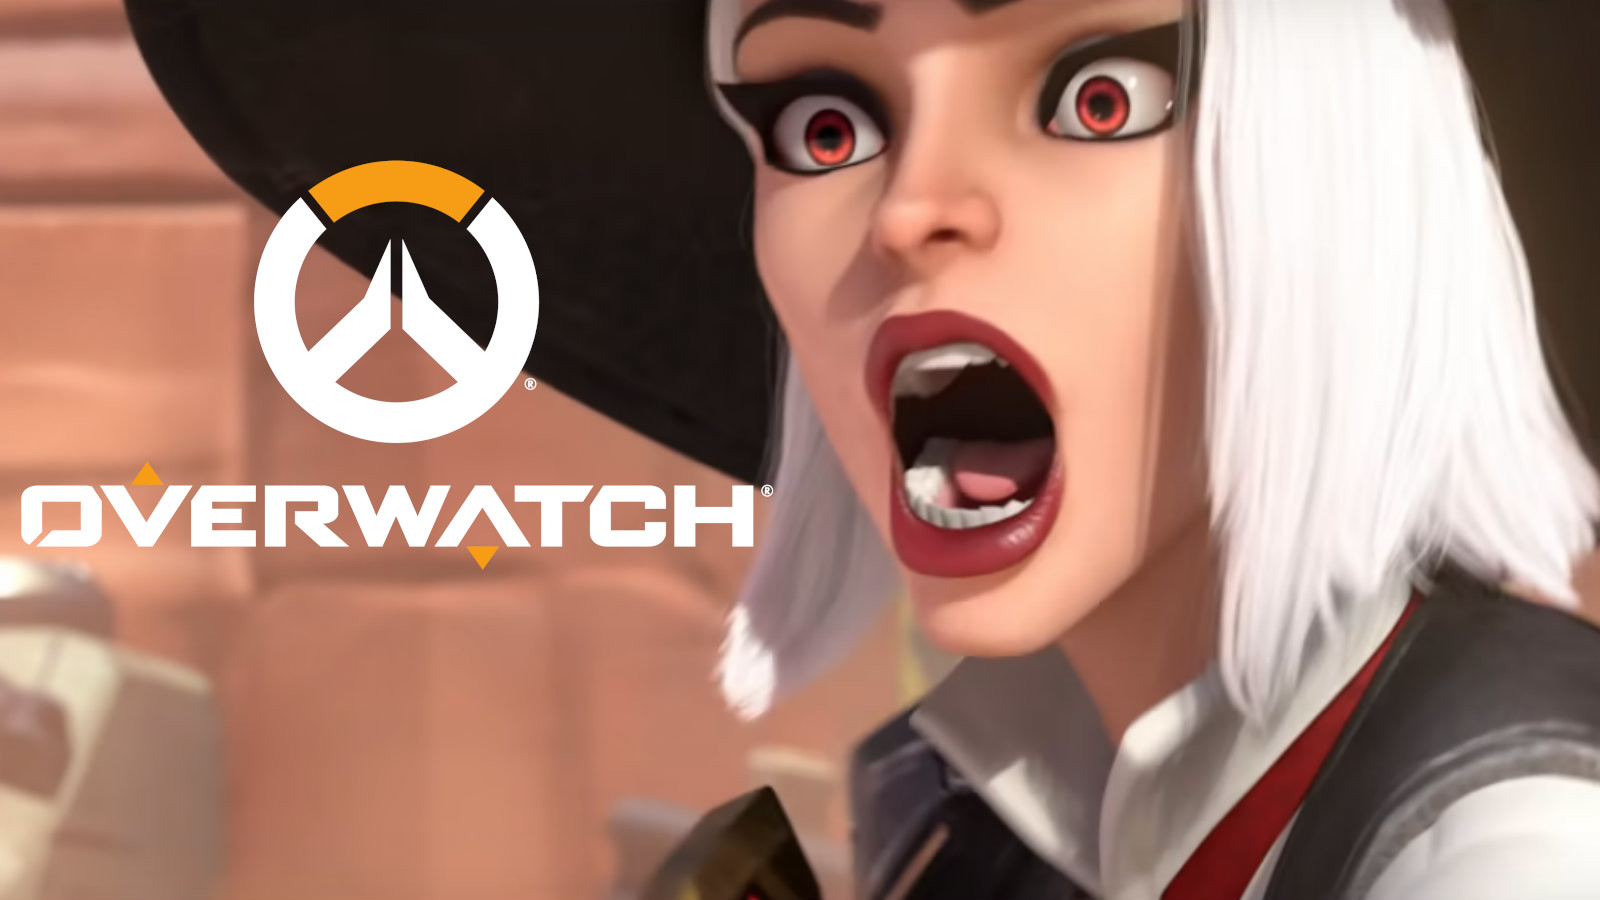 Ashe gasps in Overwatch